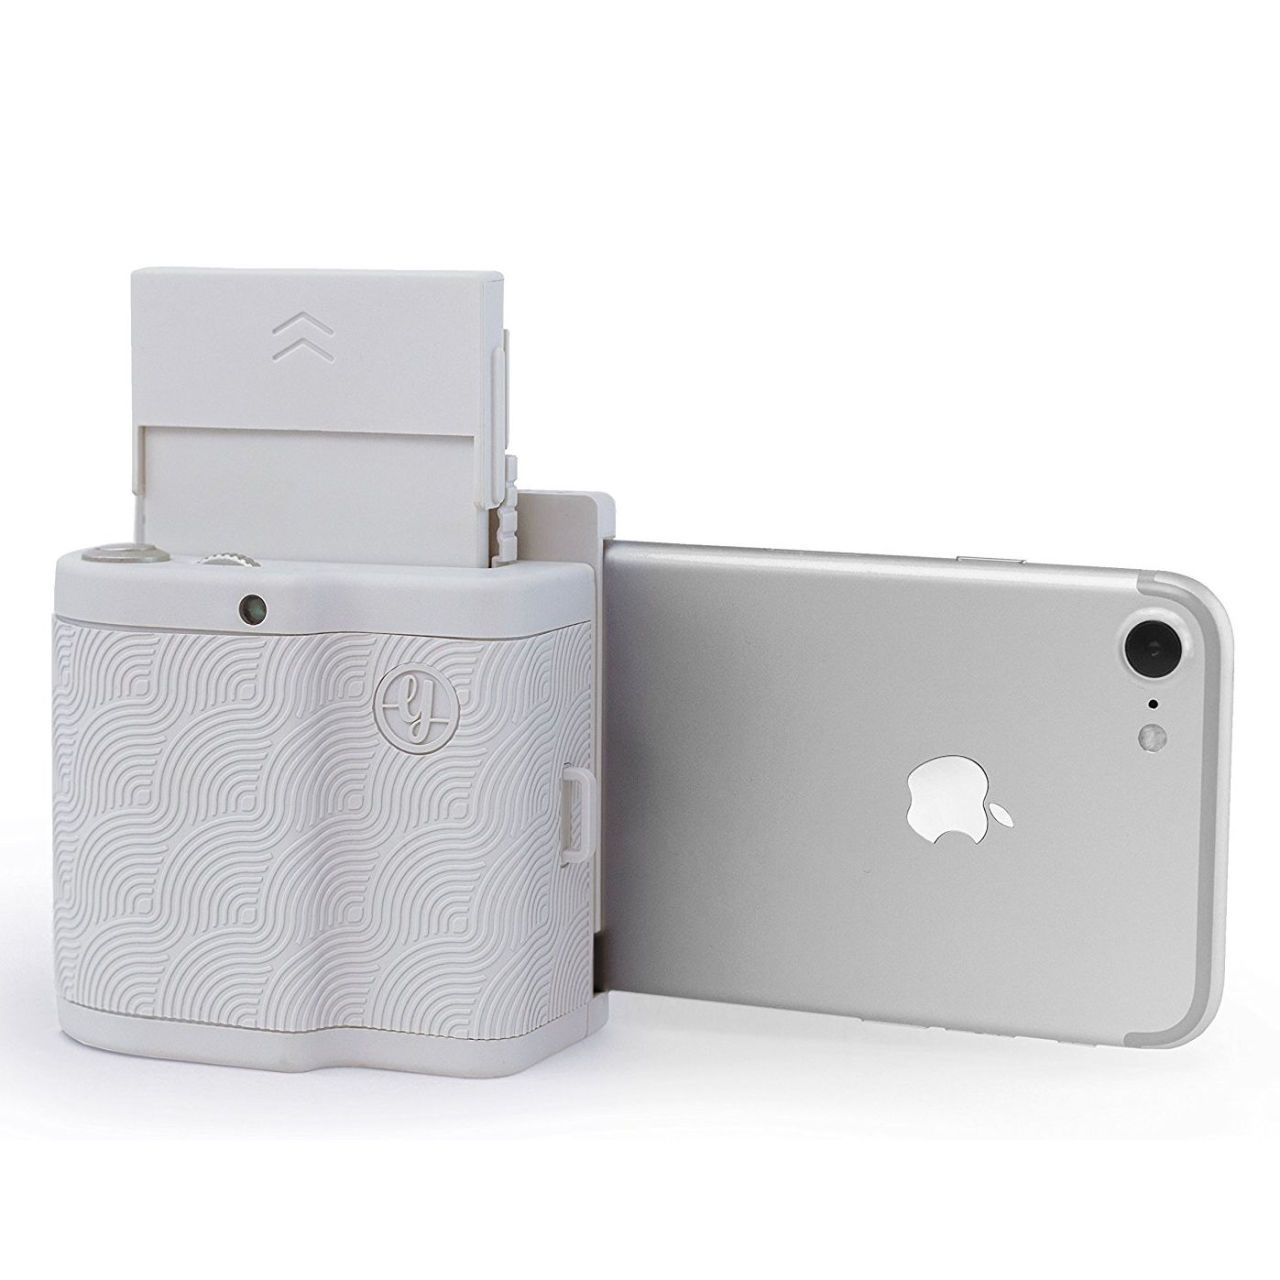 fotocamere con stampa istantanea - Prynt Pocket for iPhone